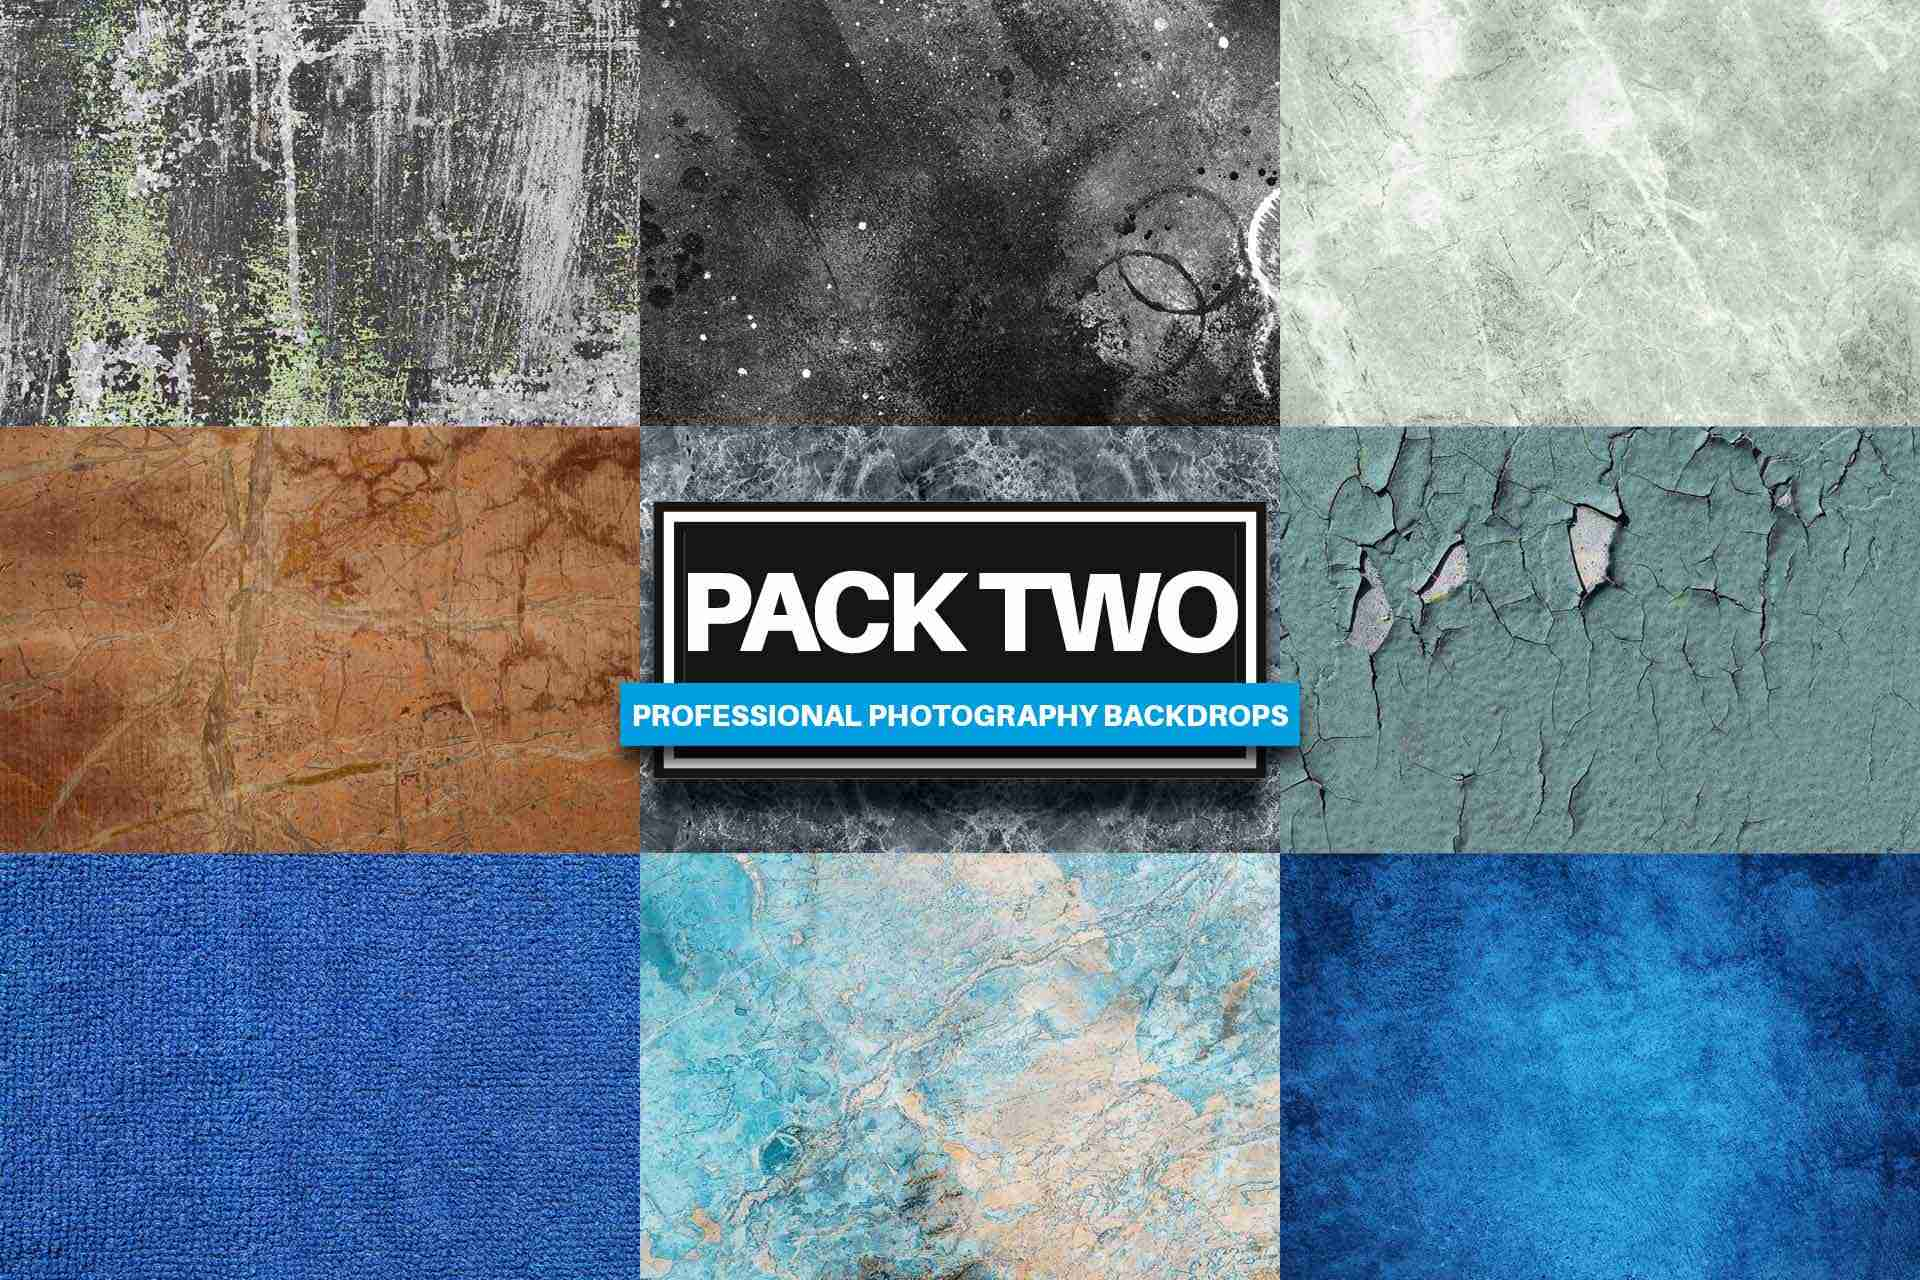 A2-Waterproof-Photographic-Backdrops-Pack2-2